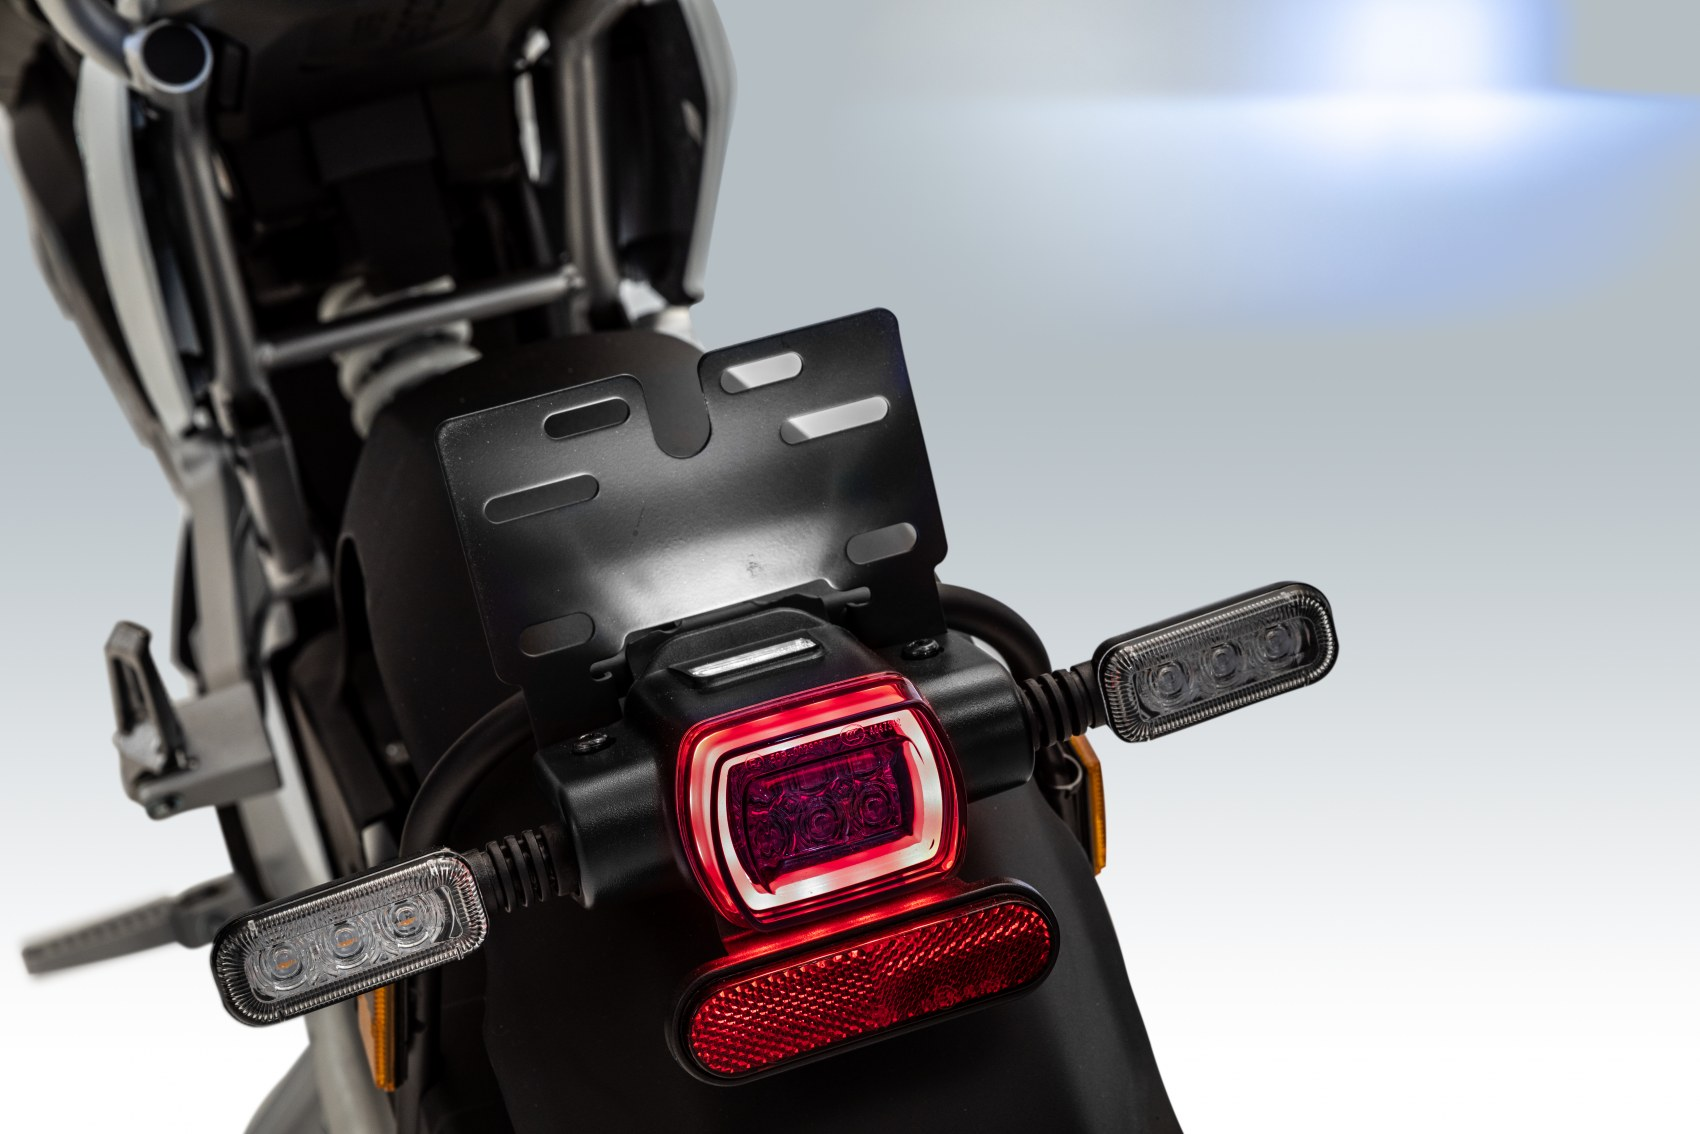 Super Soco TC Max electric motorcycle tail unit